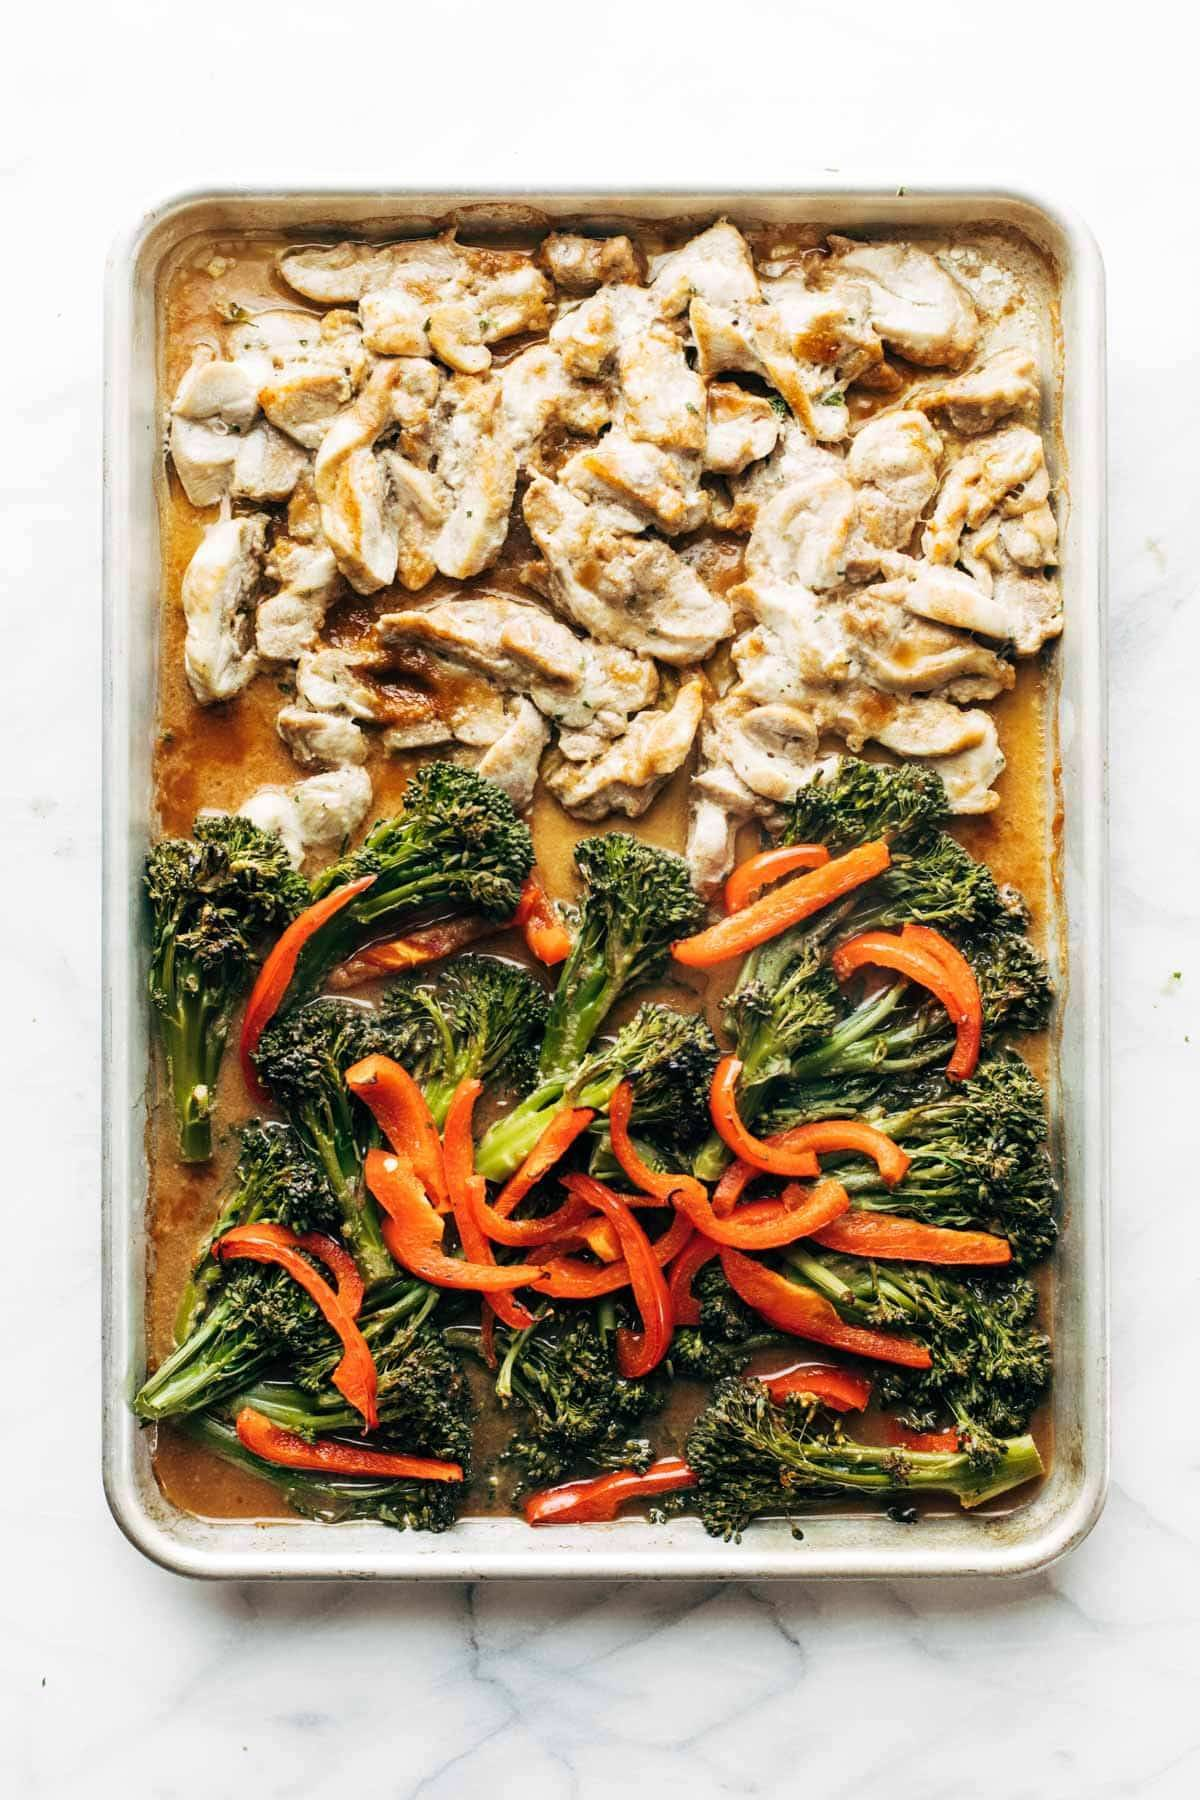 Garlic Ginger Chicken and Broccoli baked on sheet pan.